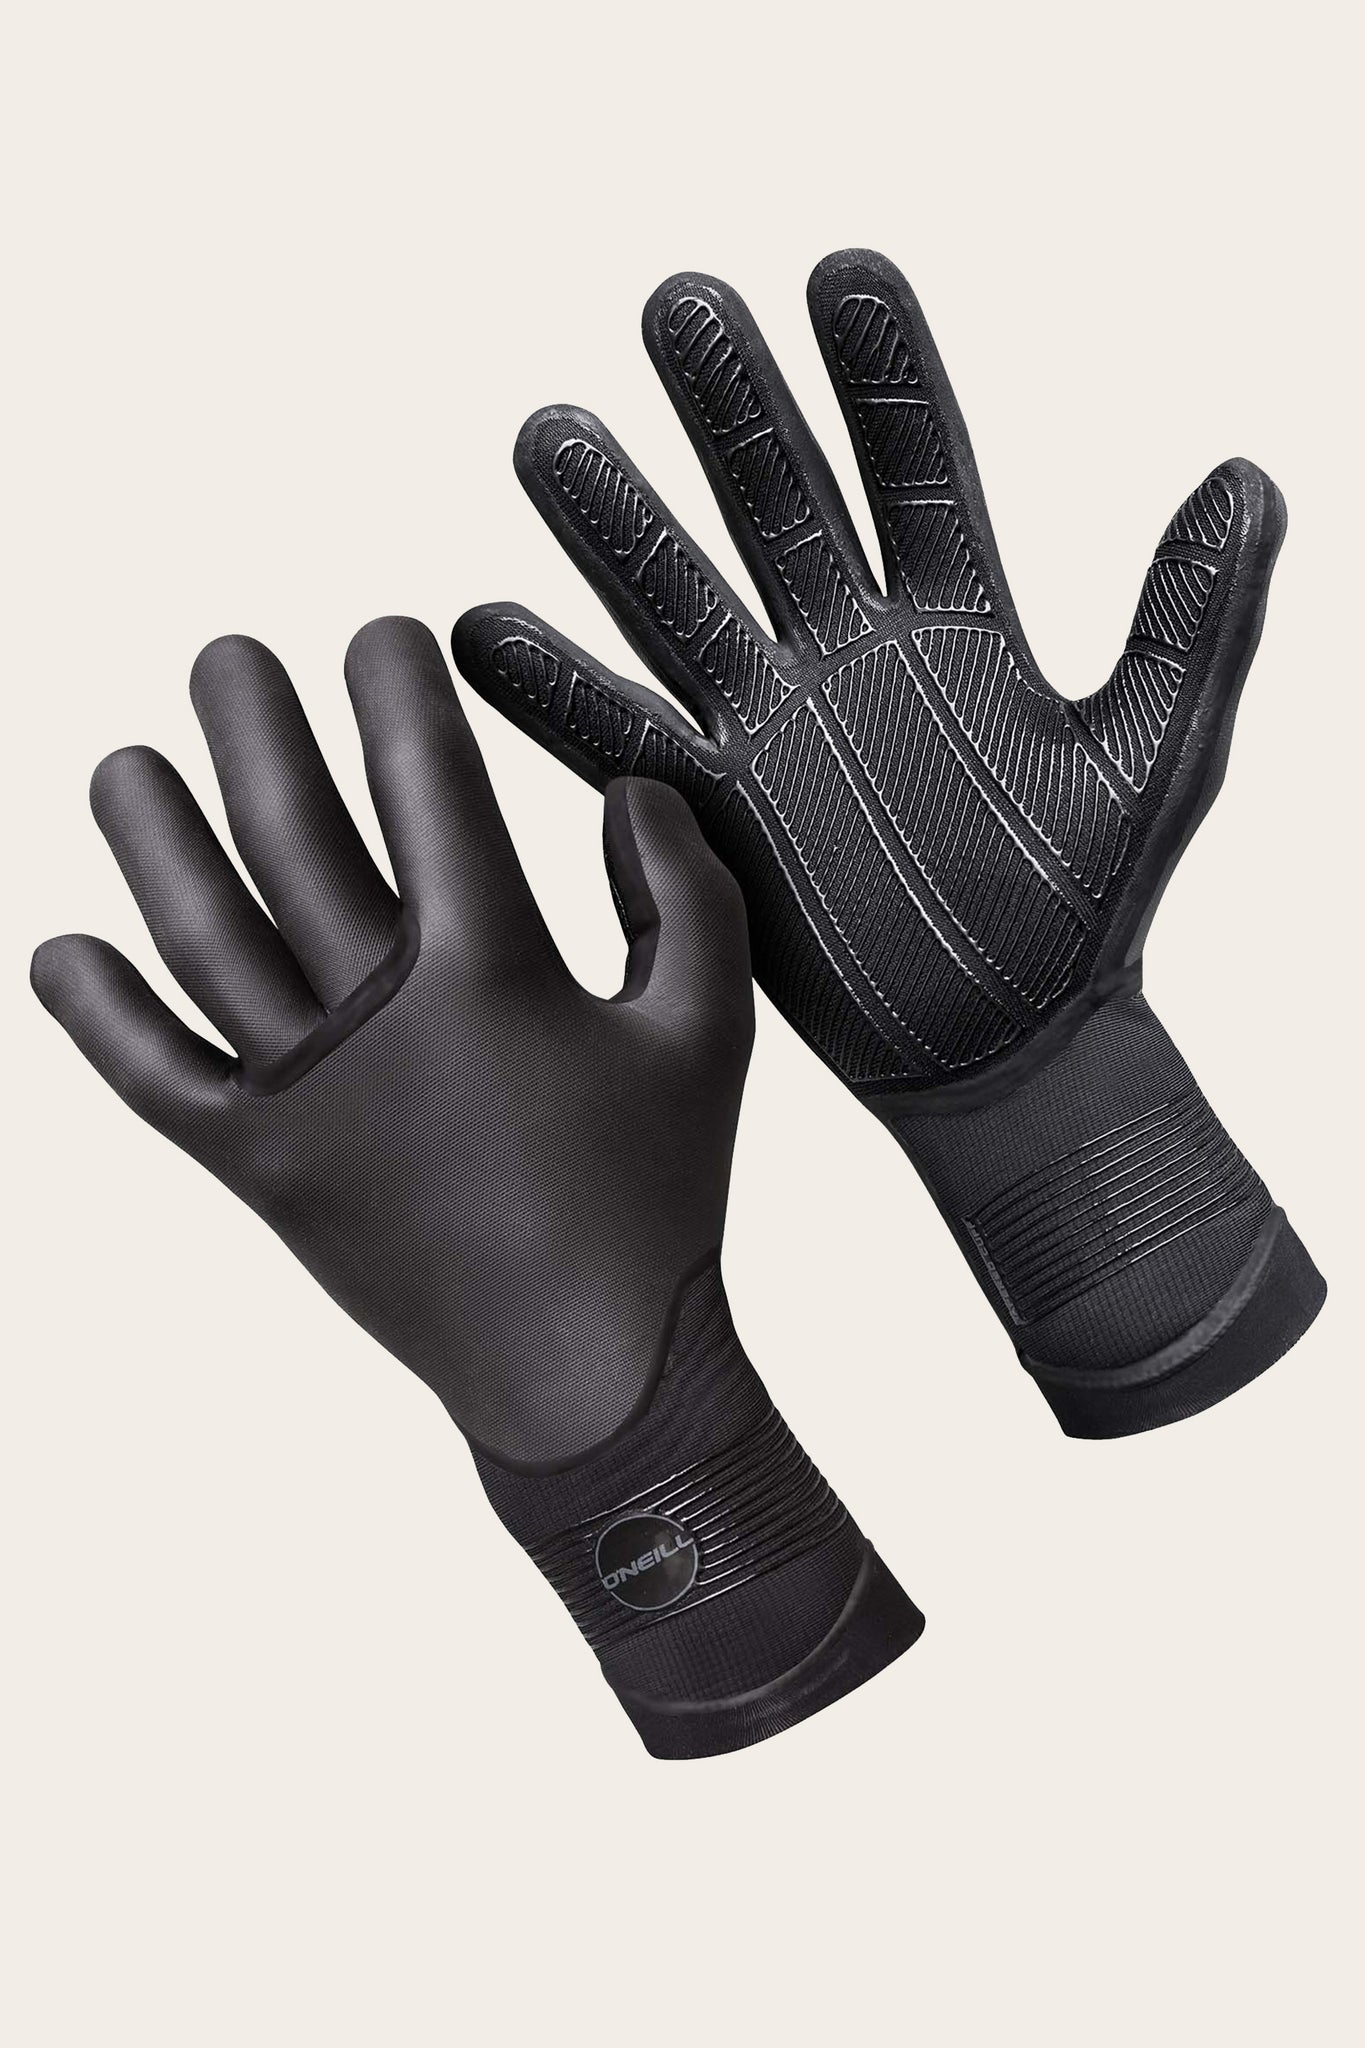 Psycho Tech 5Mm Glove - Black | O'Neill